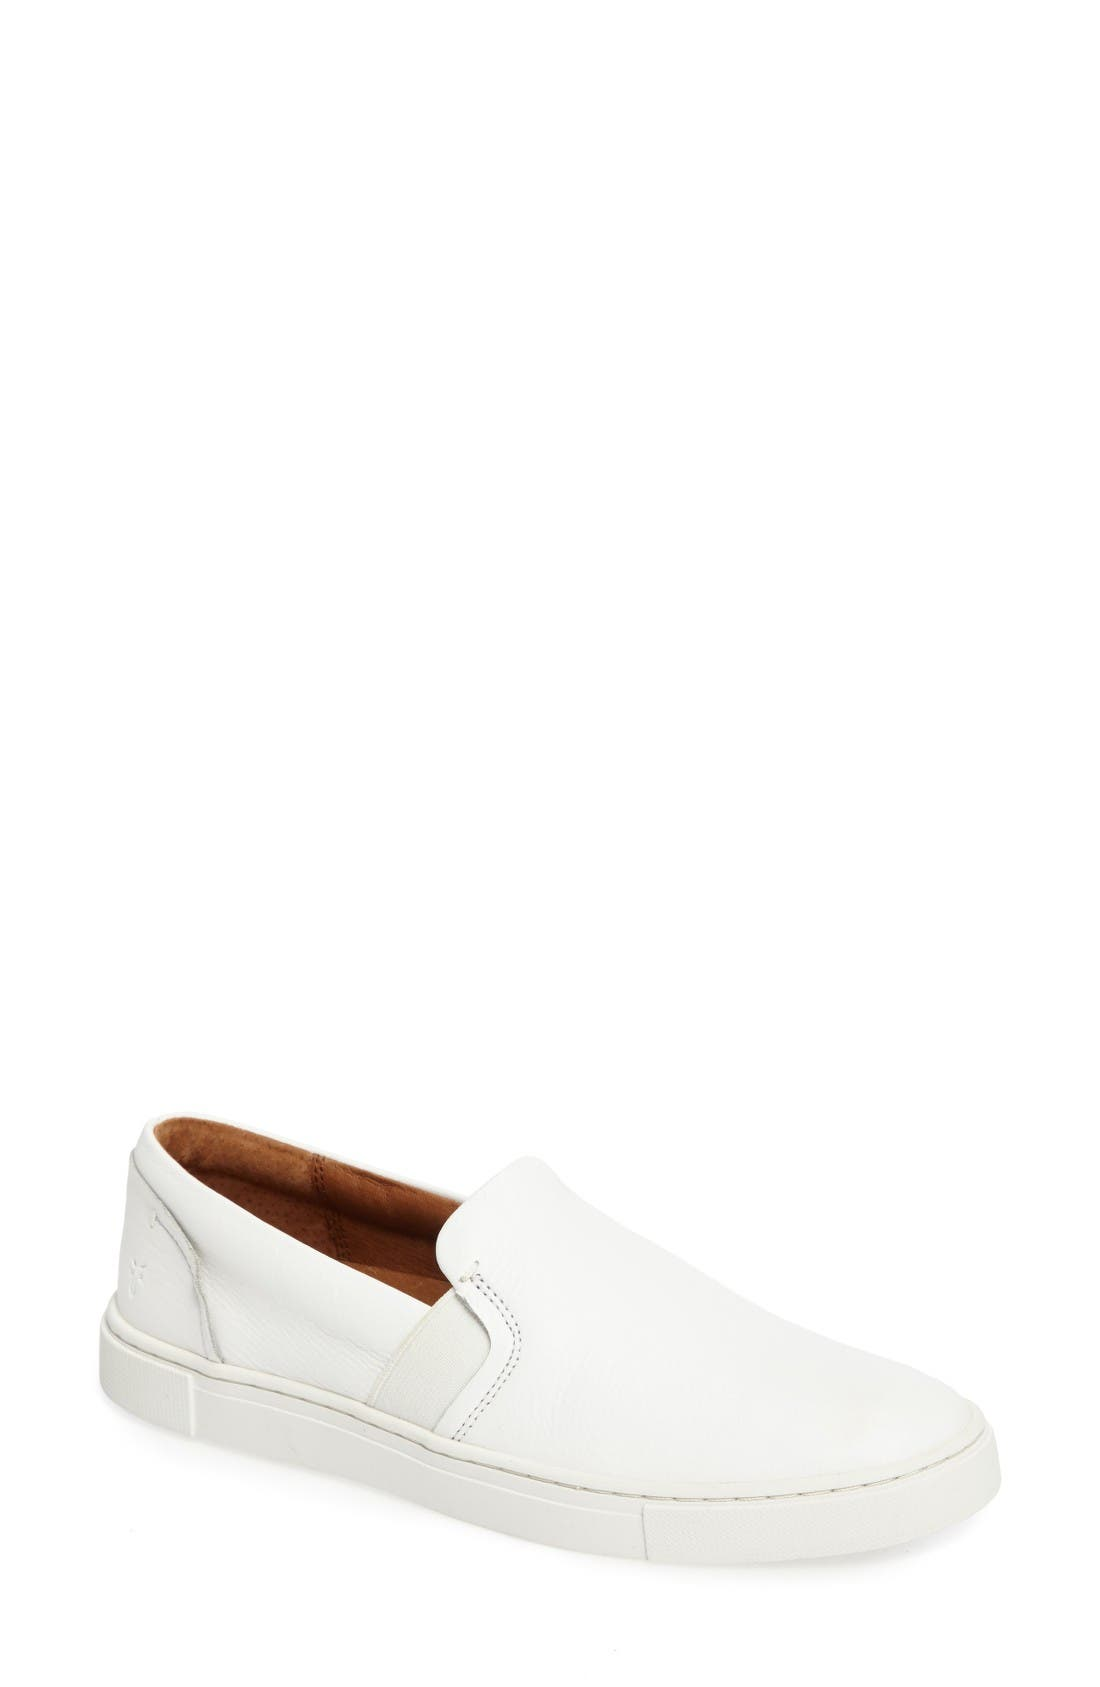 Main Image - Frye Ivy Slip-On Sneaker (Women)